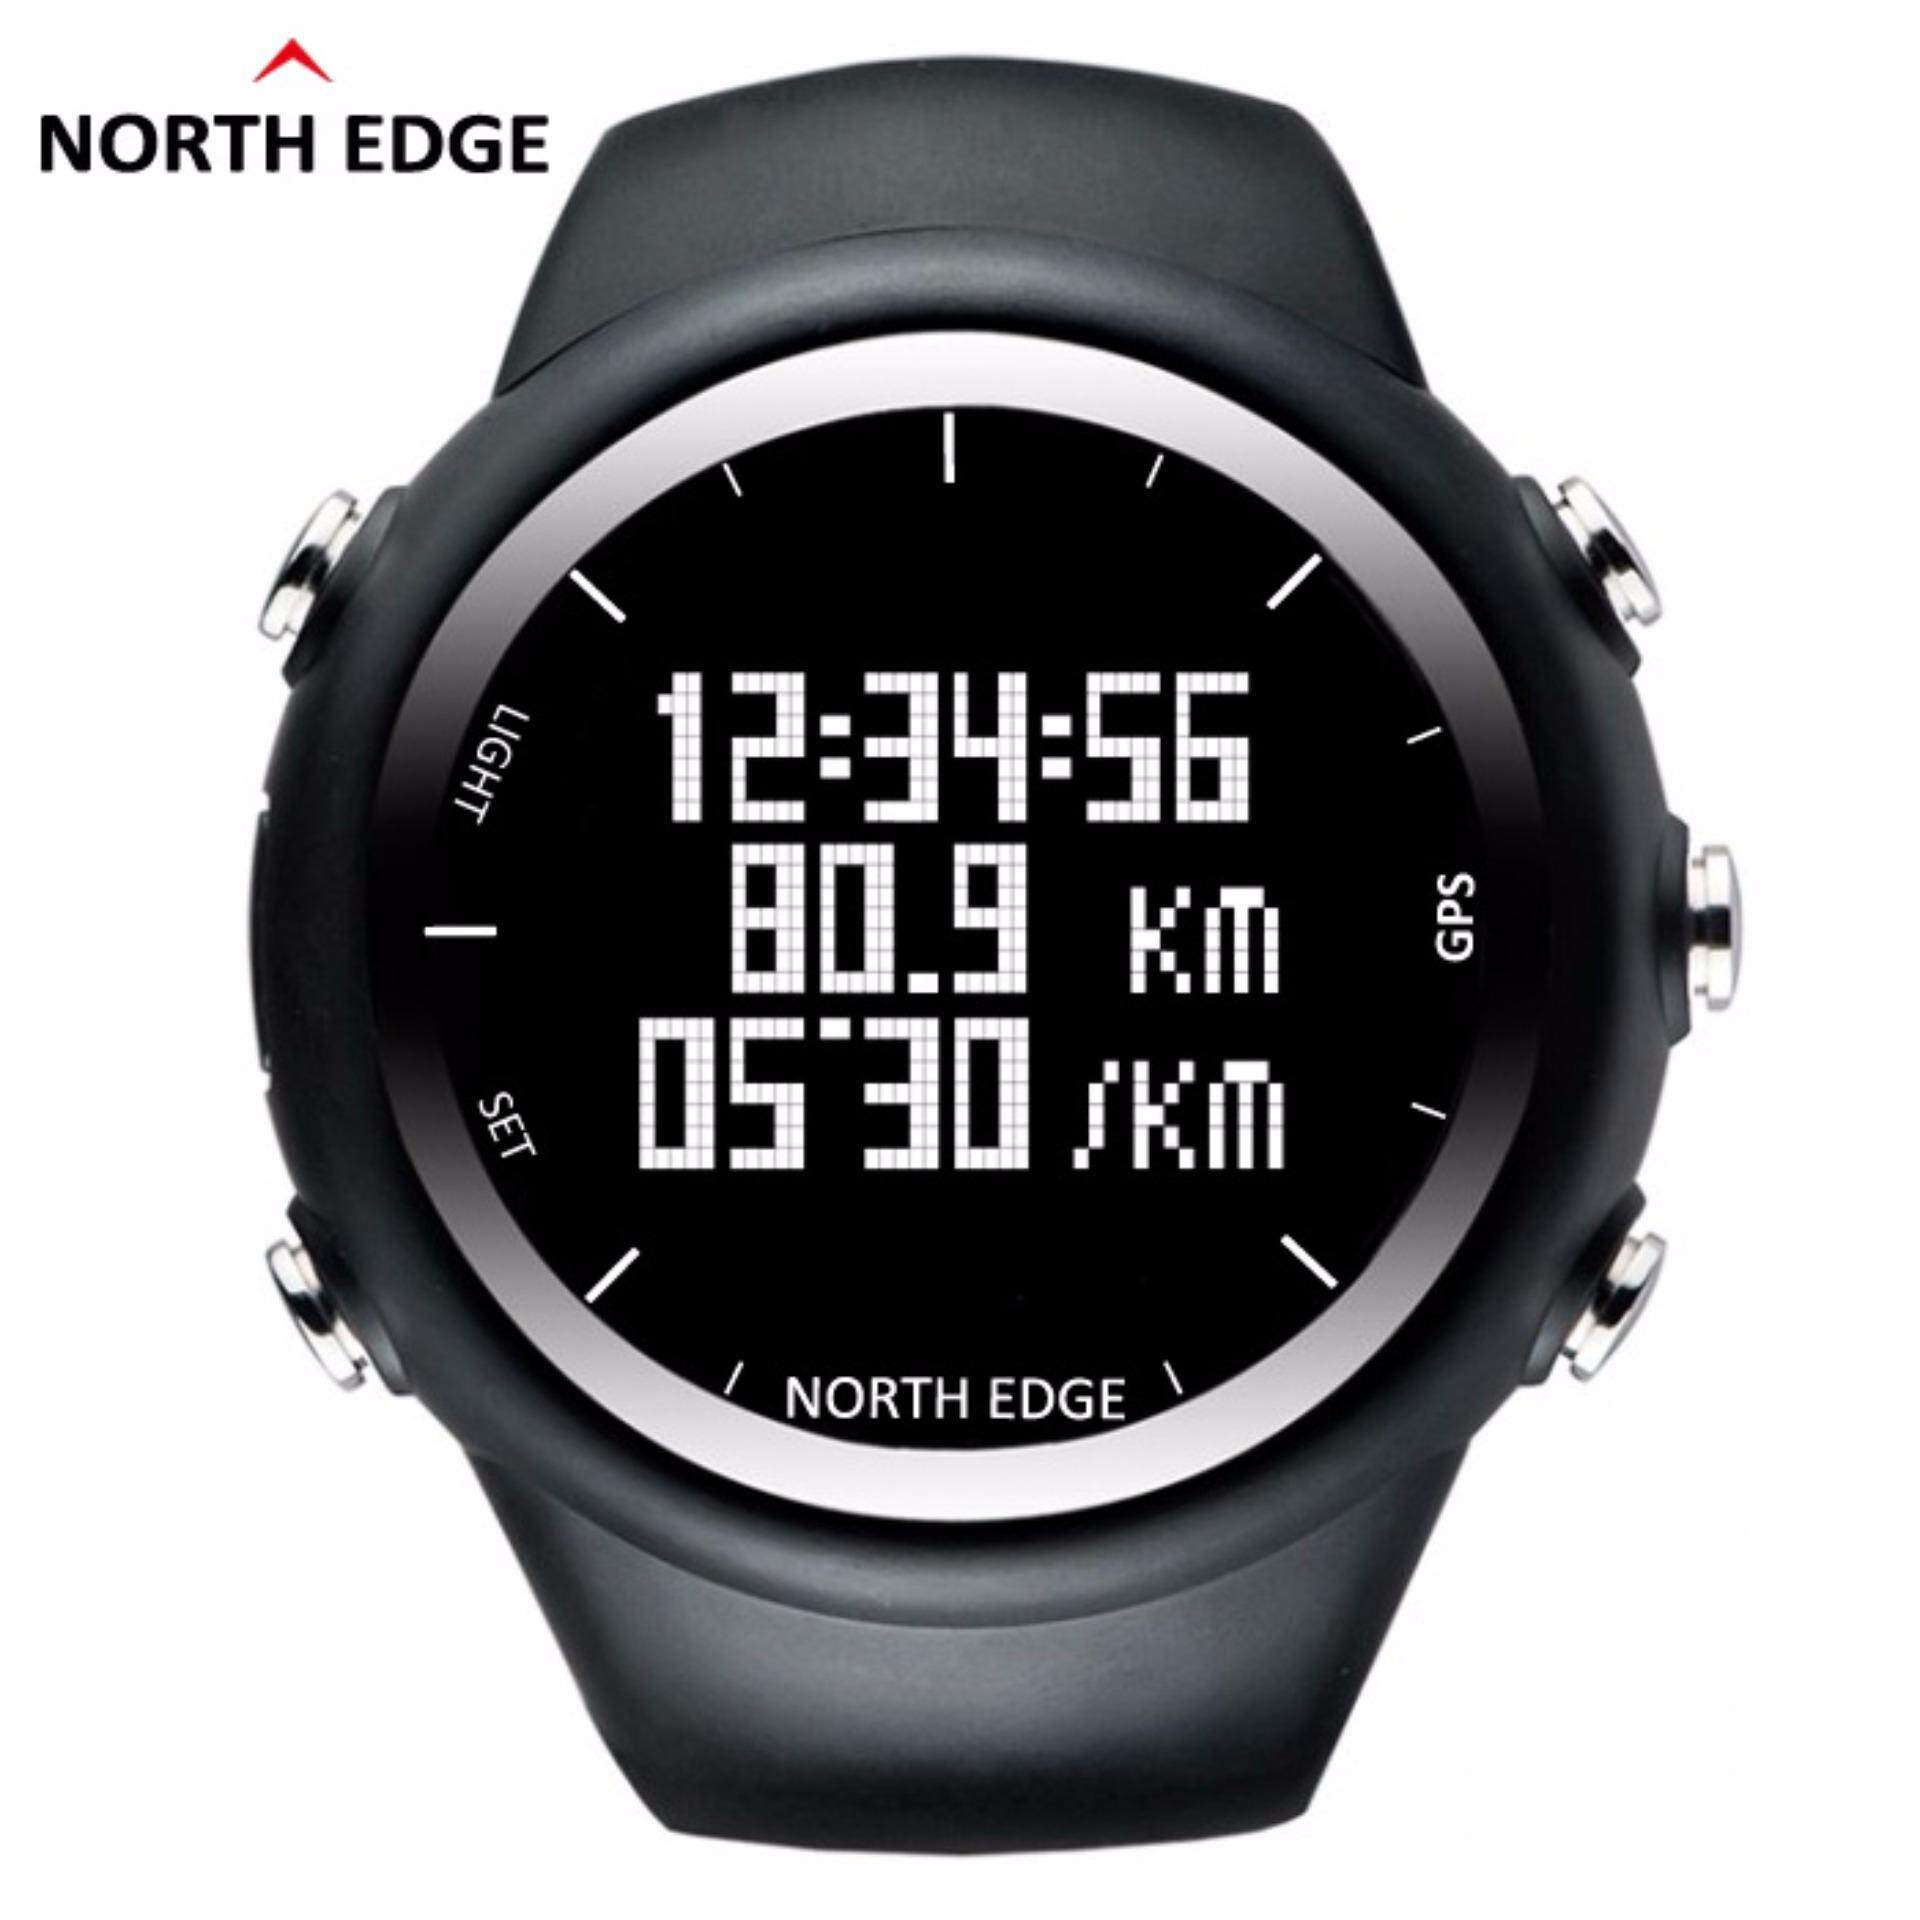 gps running sports digital watch men and women smart watch for gps running sports digital watch men and women smart watch for swimming diving sailing hiking waterproof 5atm distance calories lazada